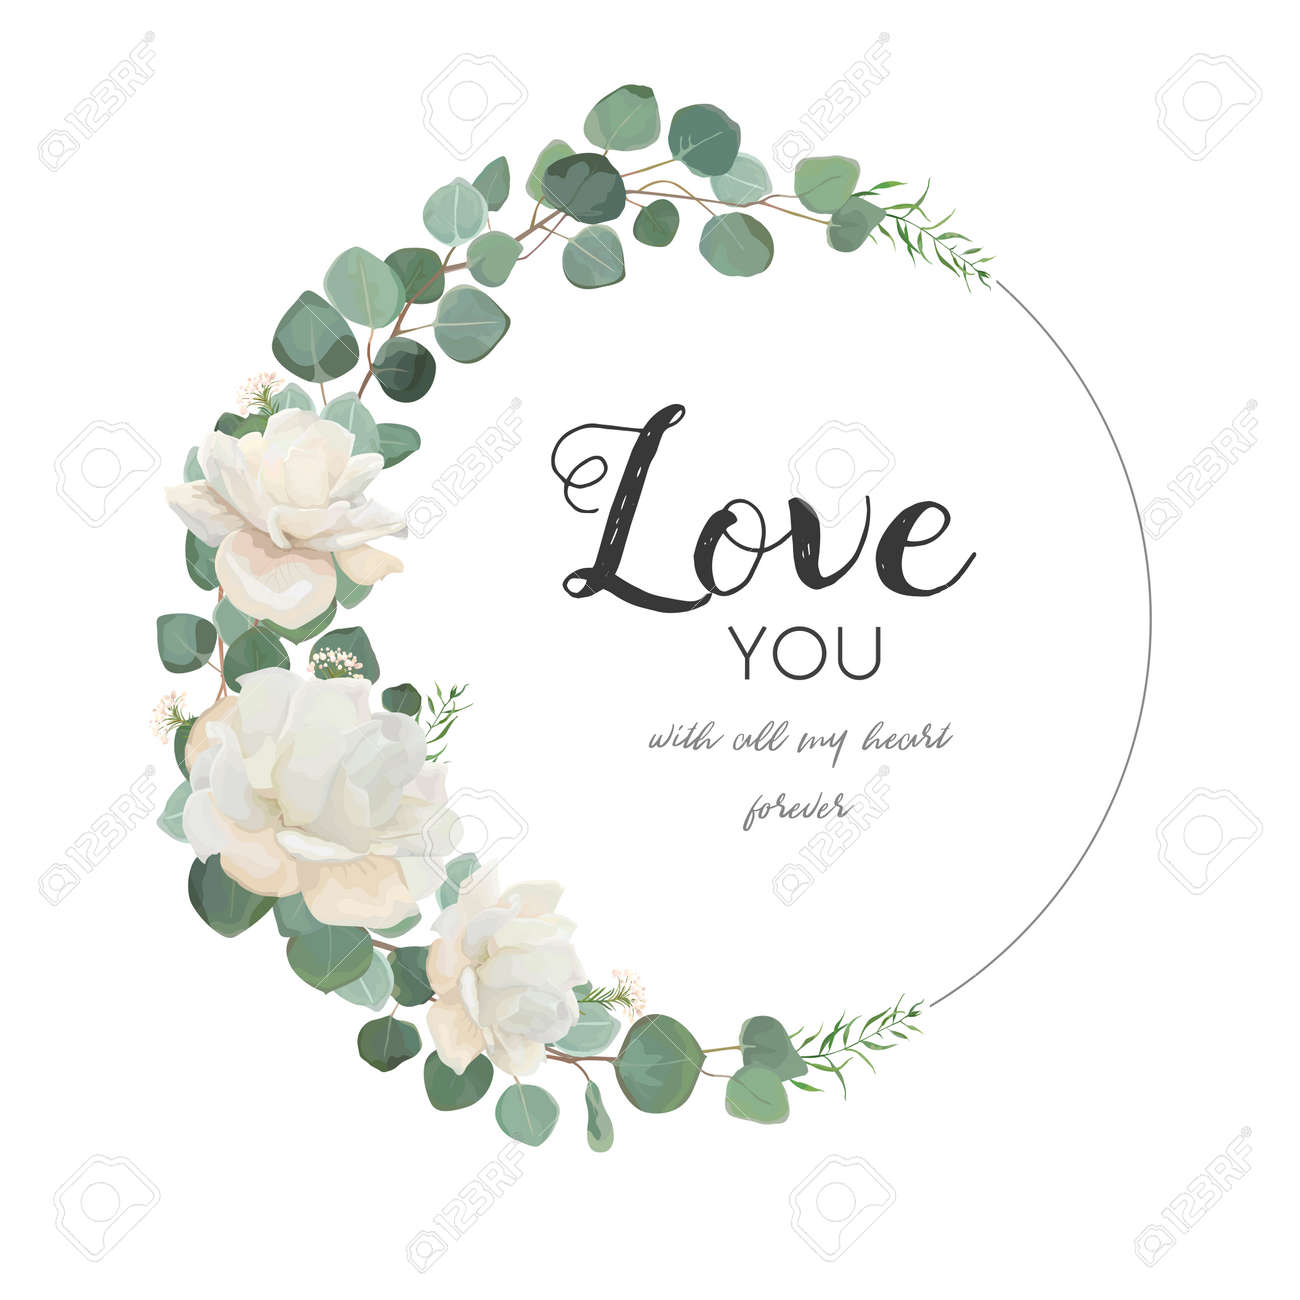 Vector floral design card. White Rose cute flower Eucalyptus branch with leaves & greenery mix round wreath. Greeting, wedding invite template.Round frame border with Love you quote. Tender copy space - 92843377